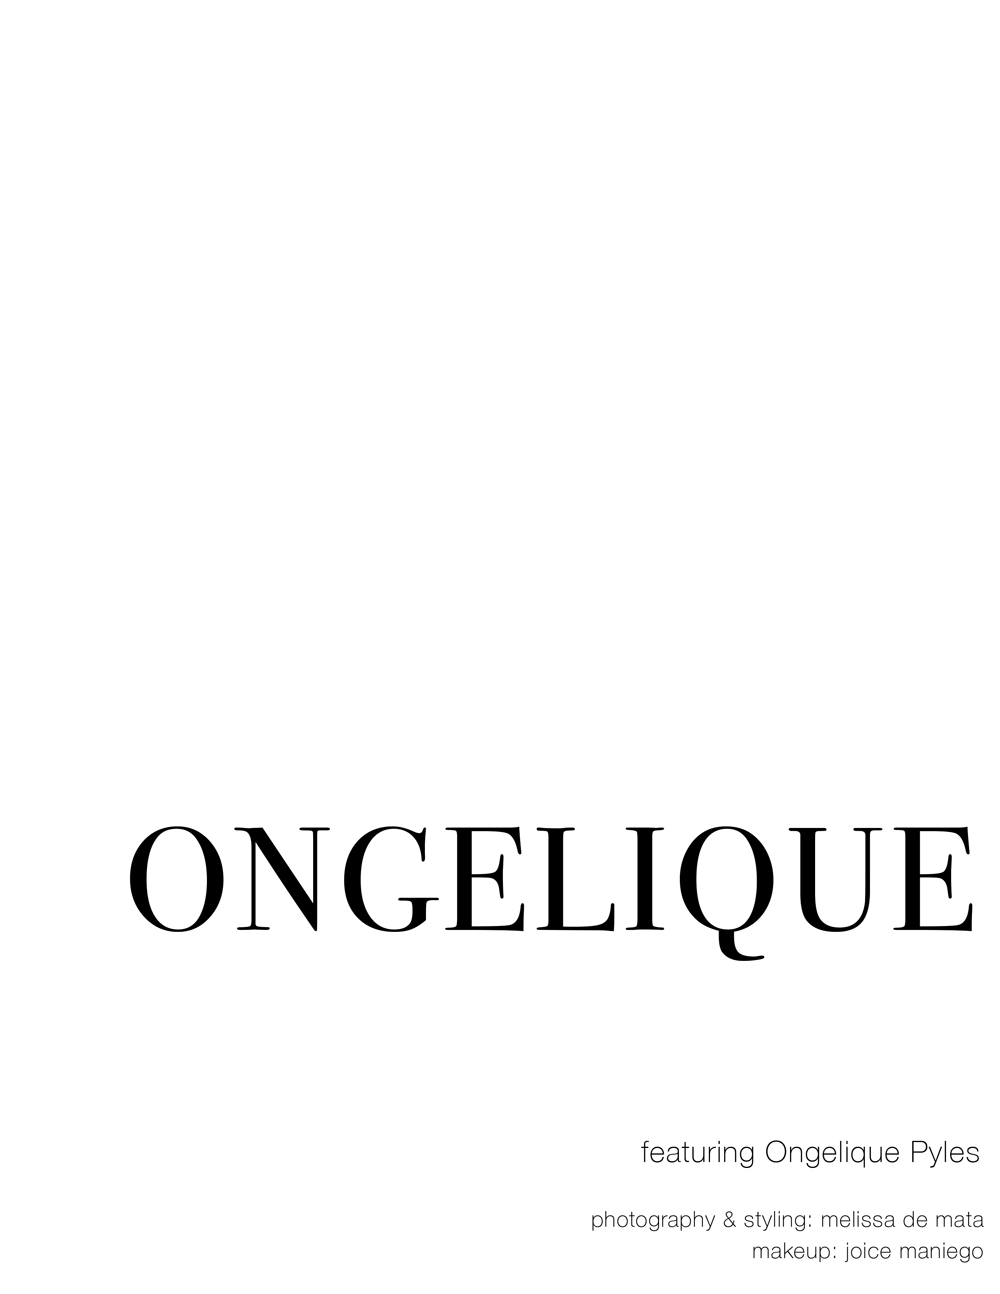 melissademata.com | Style Editorial - Ongelique